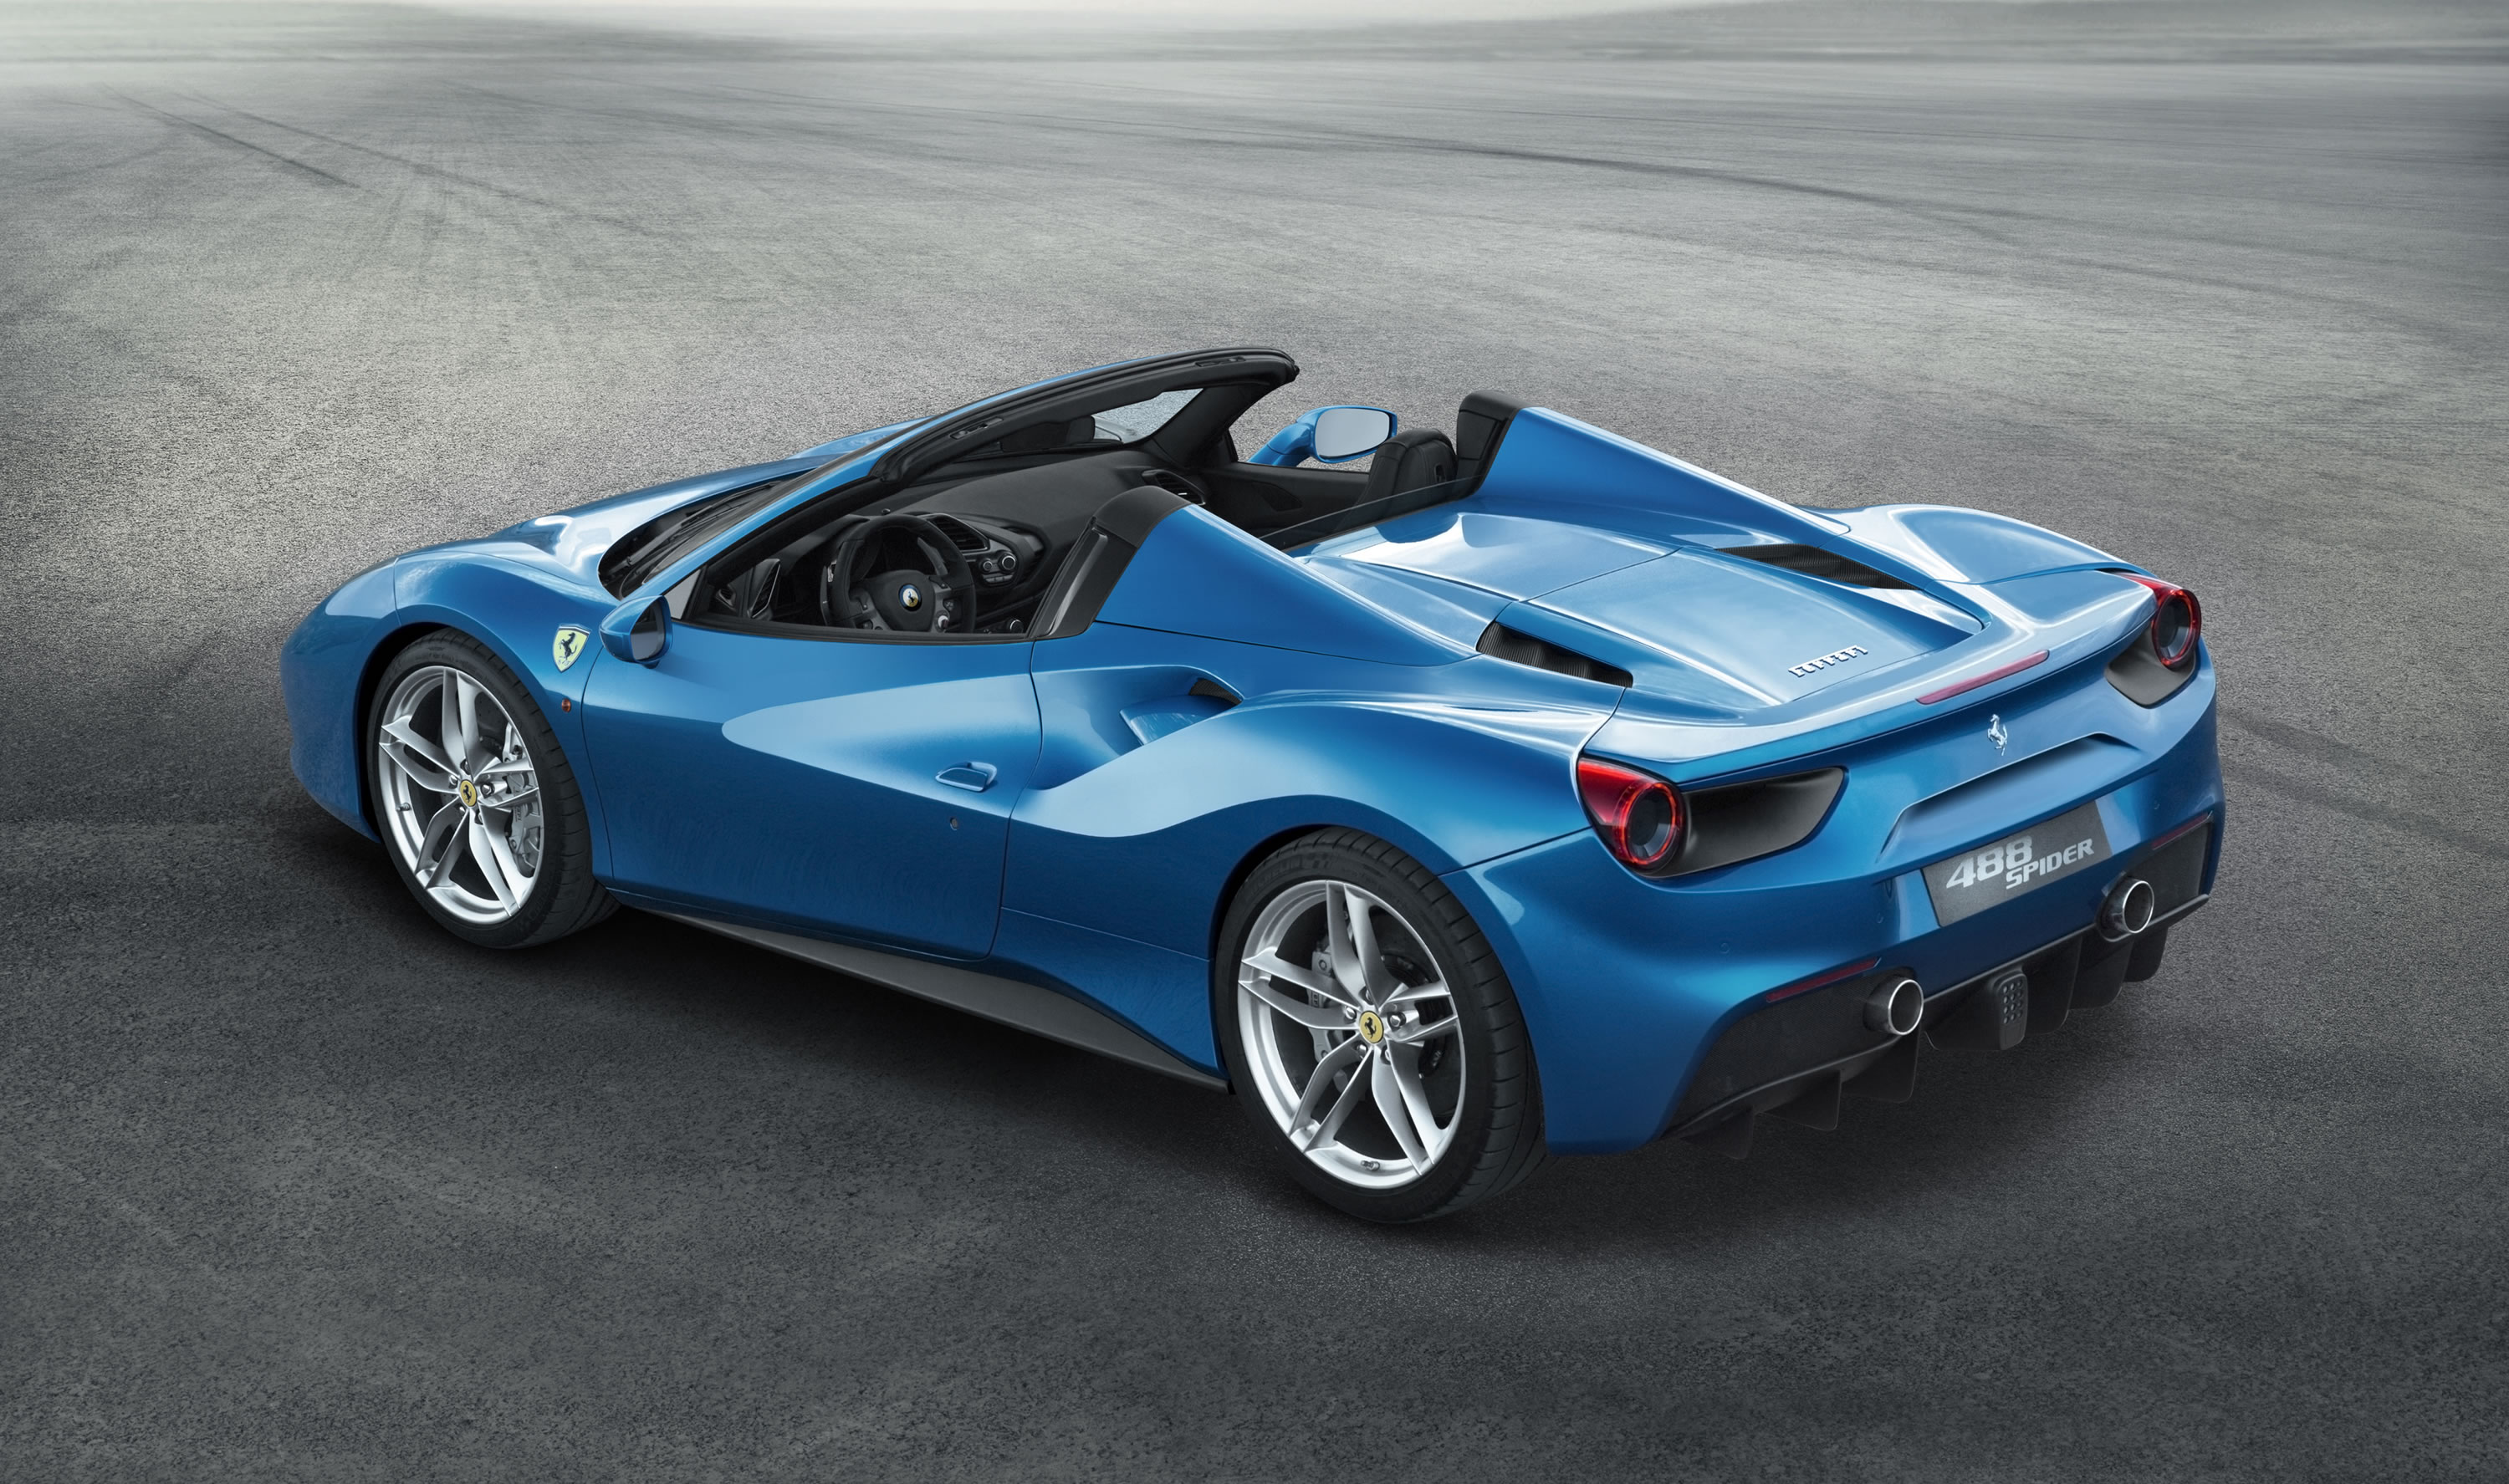 The World Premiere Of 488 Spider Will Be At Frankfurt International Motor Show In